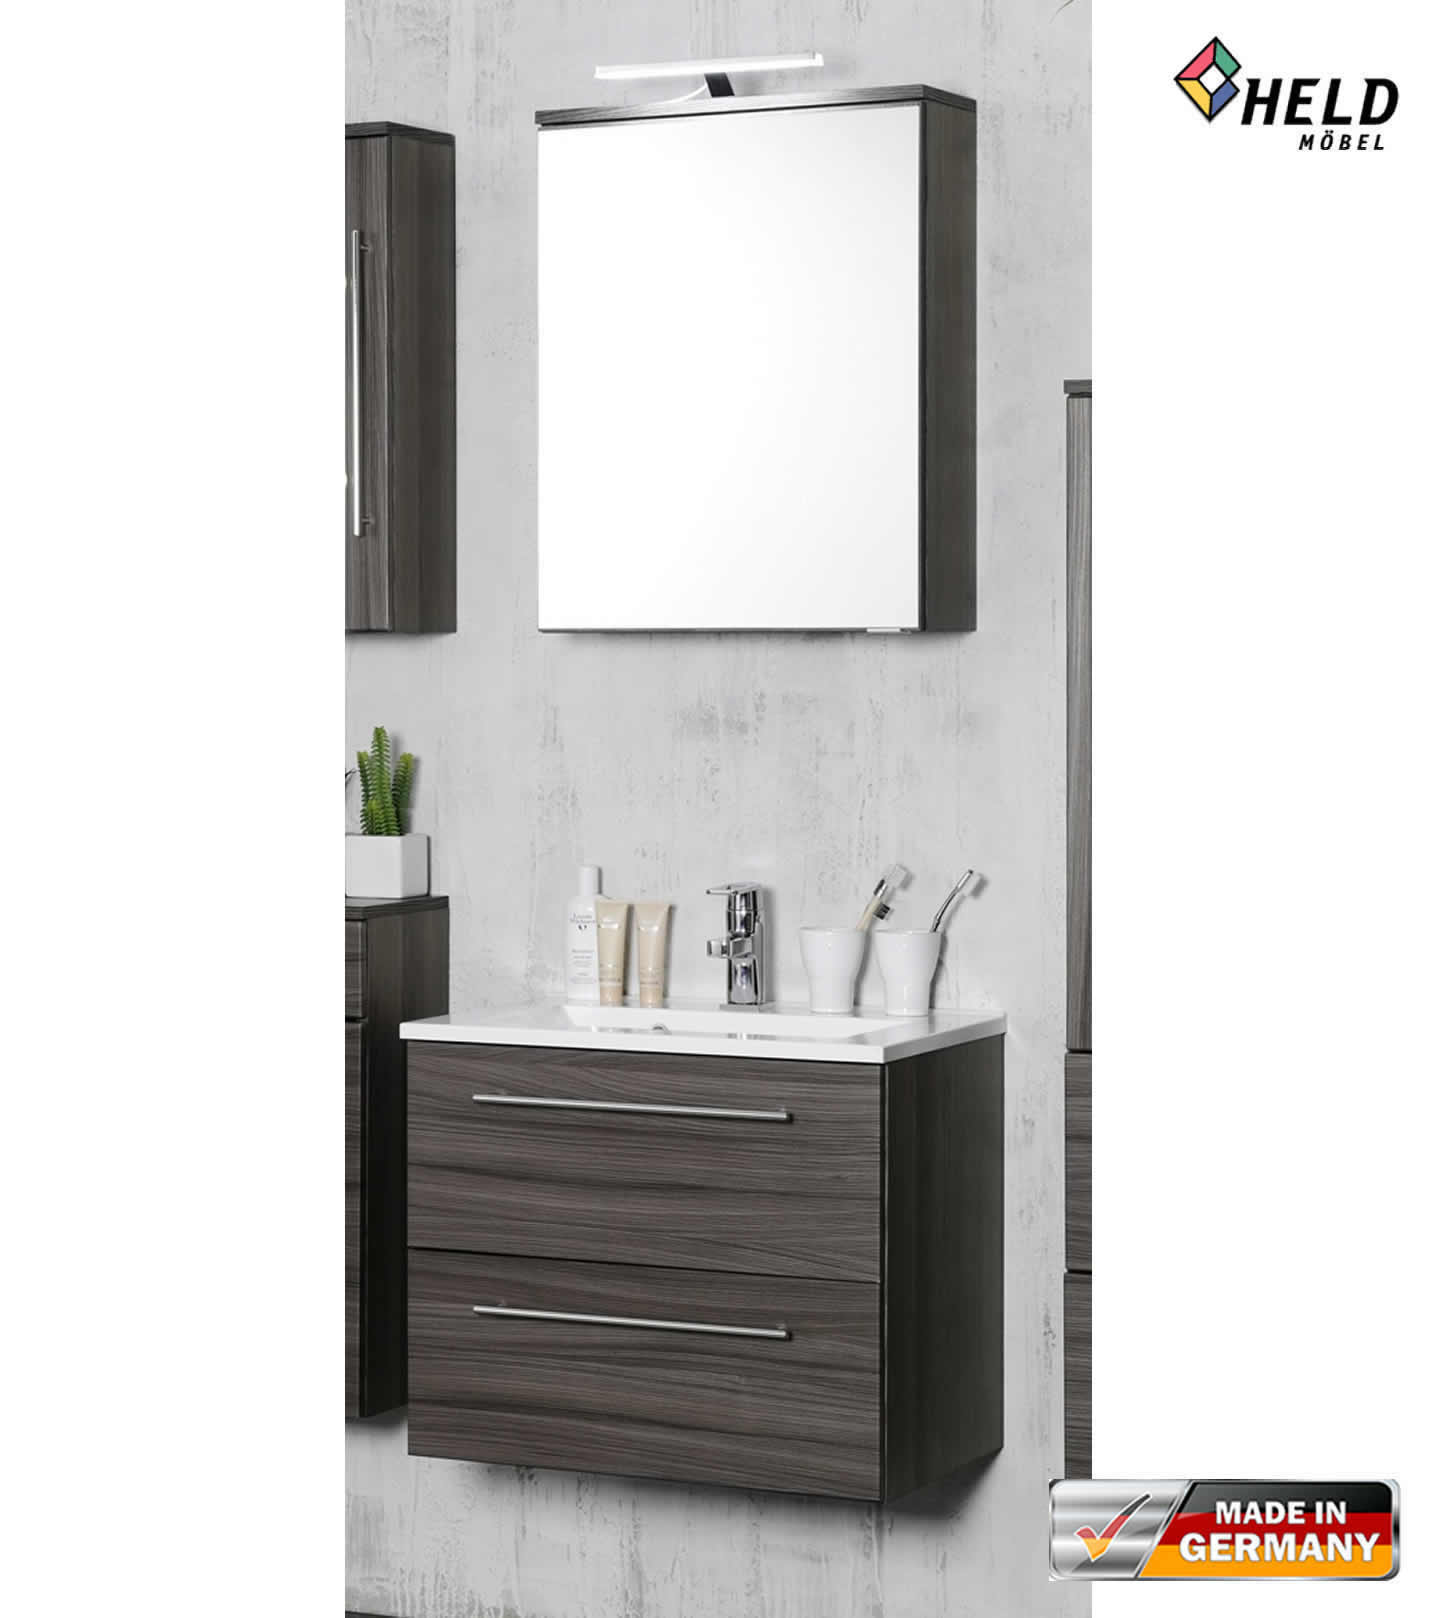 held mailand badm bel set 3 tlg 60 cm farbe w hlbar. Black Bedroom Furniture Sets. Home Design Ideas